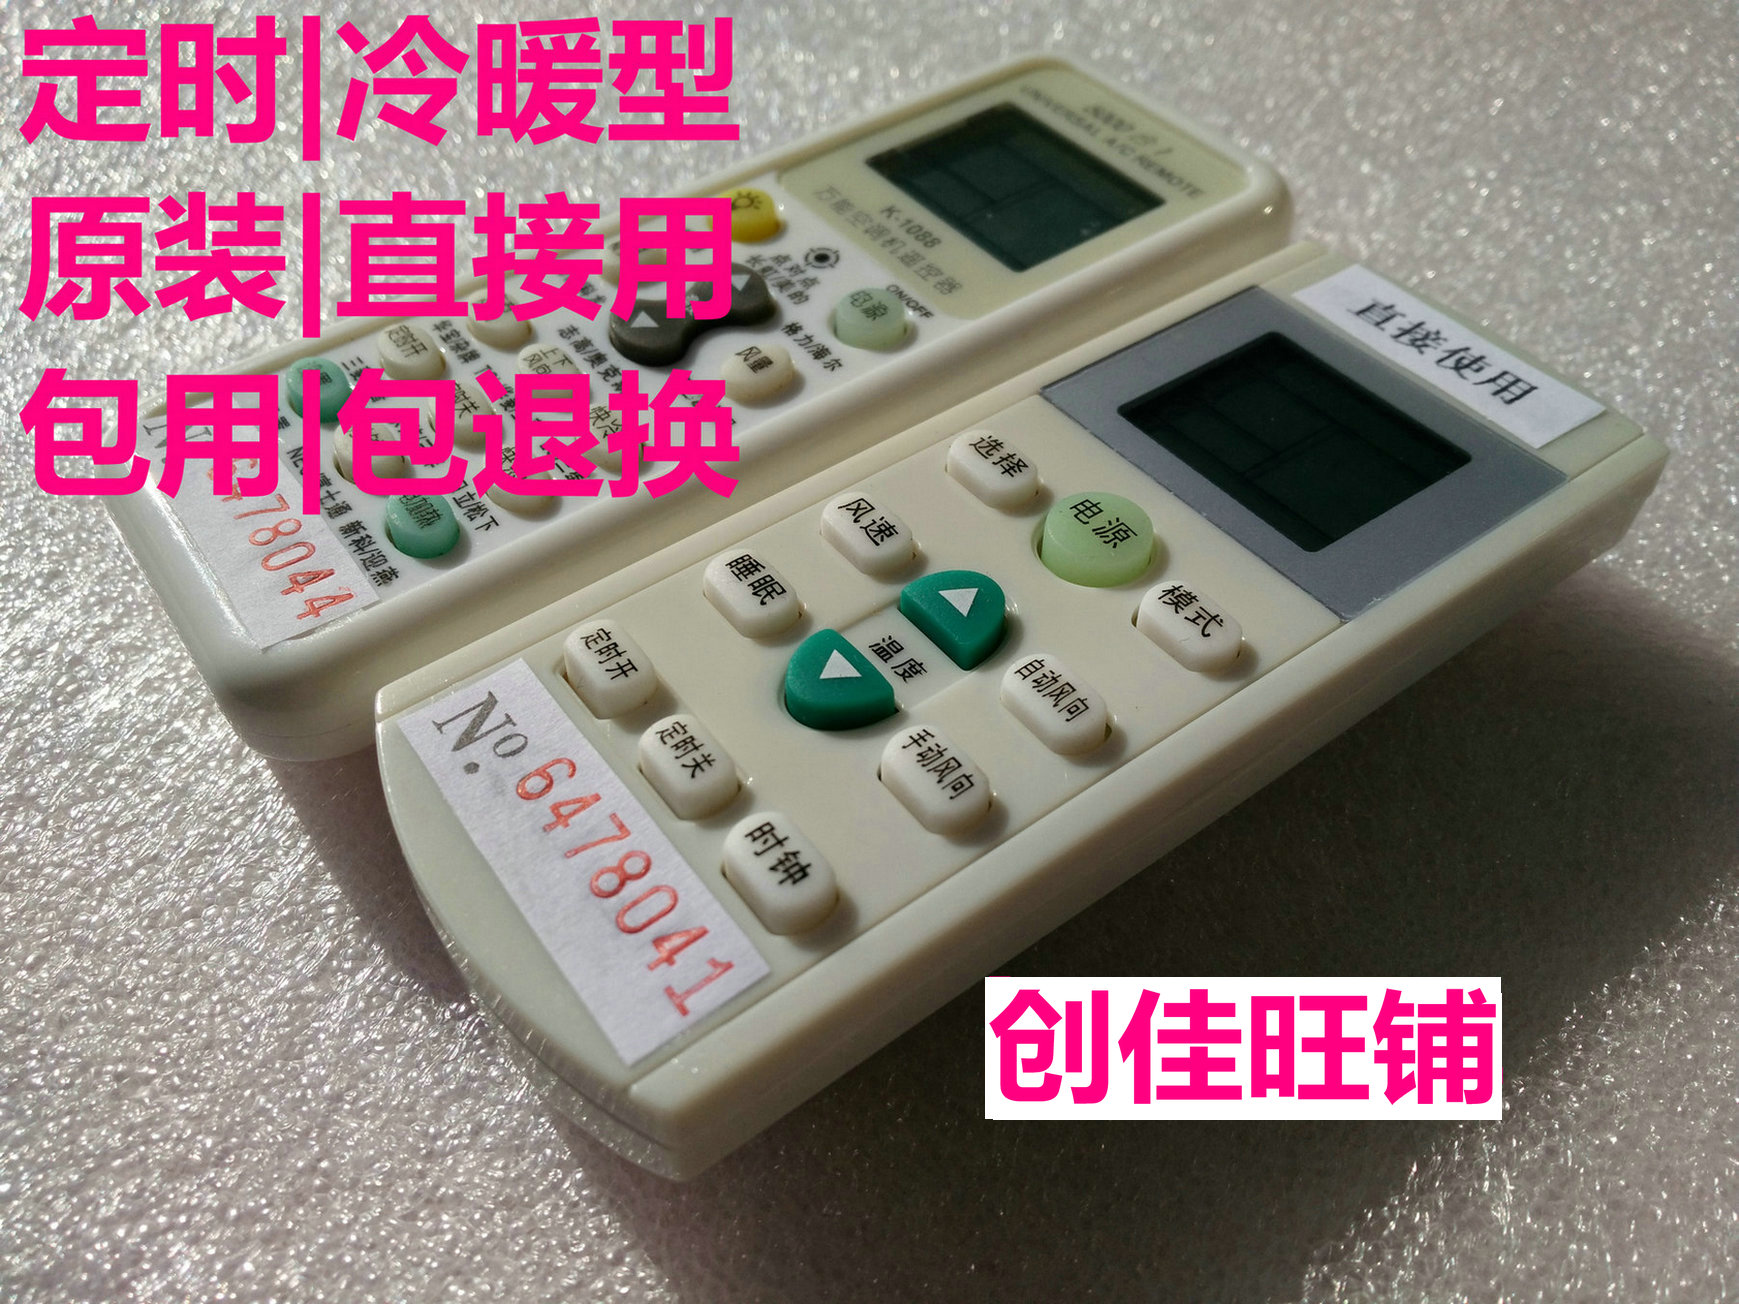 Original Daikin/ Daikin Air Conditioner KFR-125 remote controller 5P cold and warm type D163